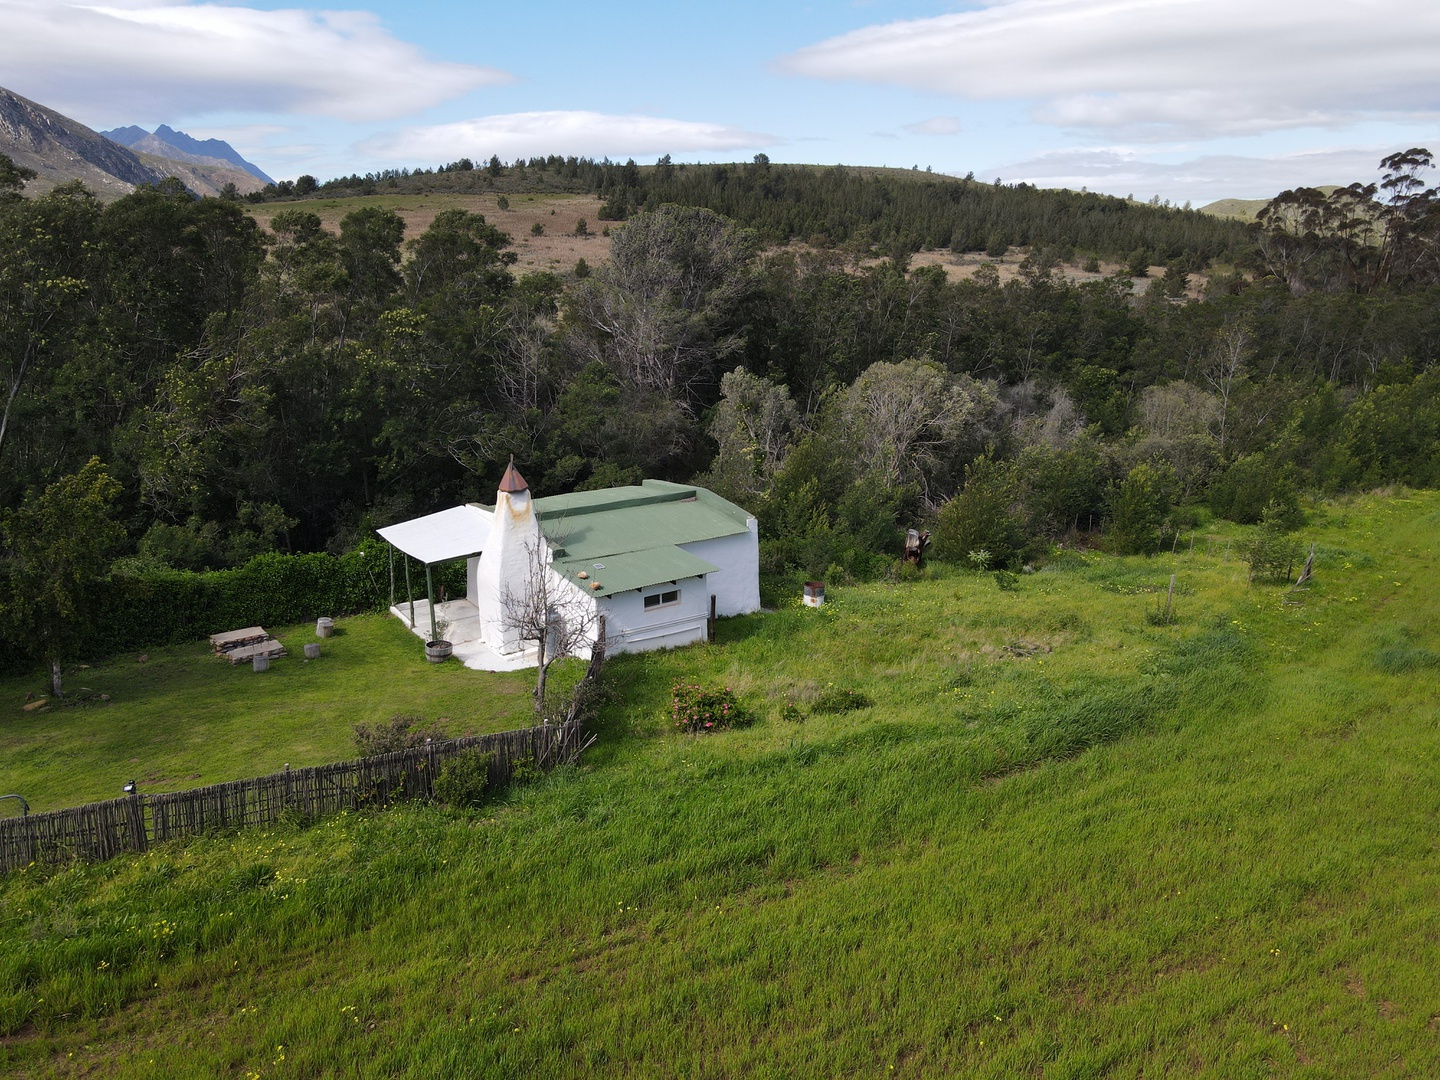 Land in Swellendam - Self-catering cottages